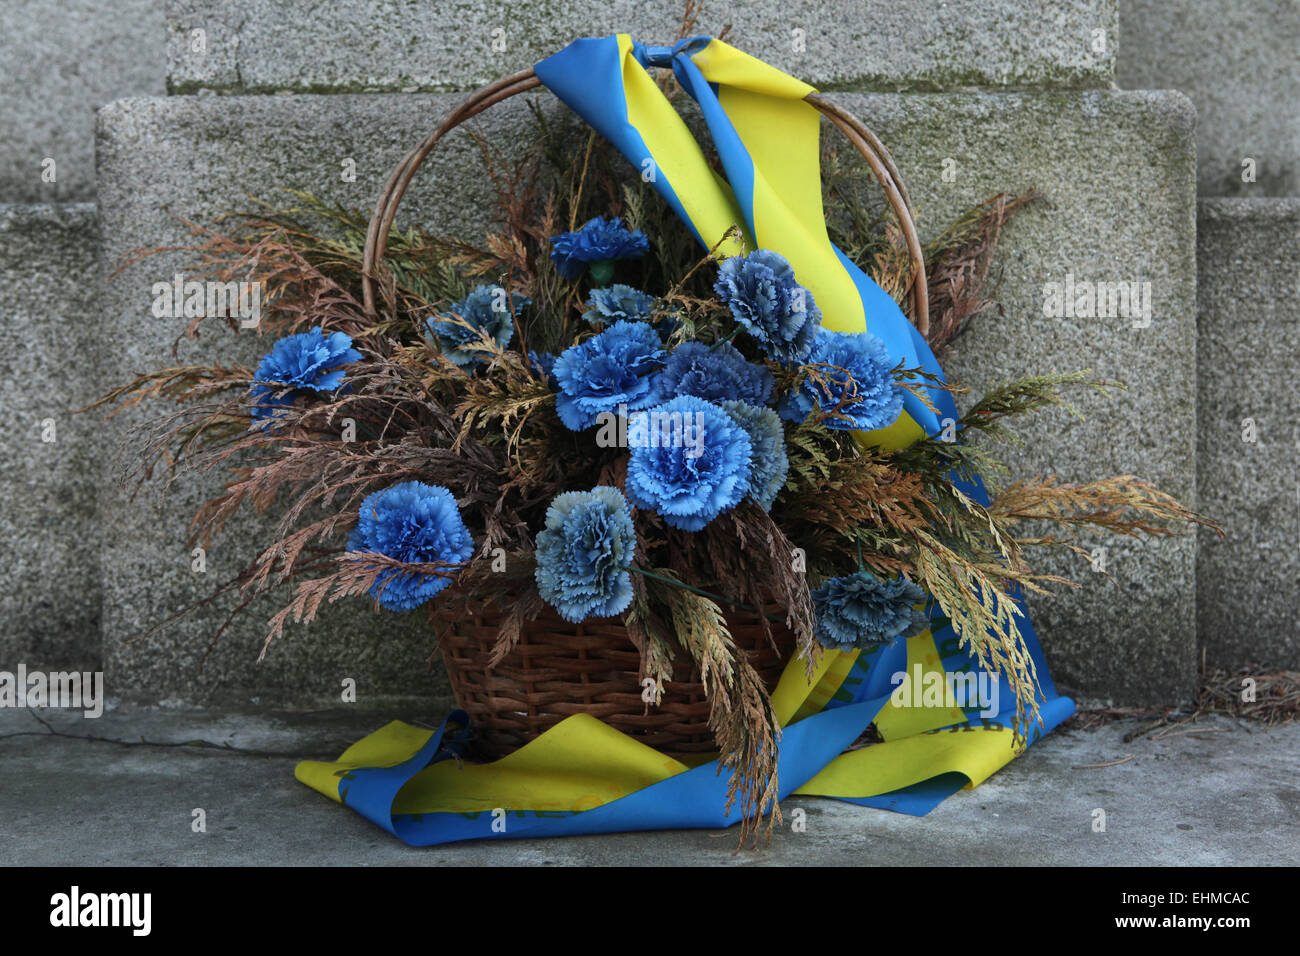 Blue flowers in a basket decorated with Ukrainian national flags at a military cemetery in Jablonne v Podjestedi, - Stock Image